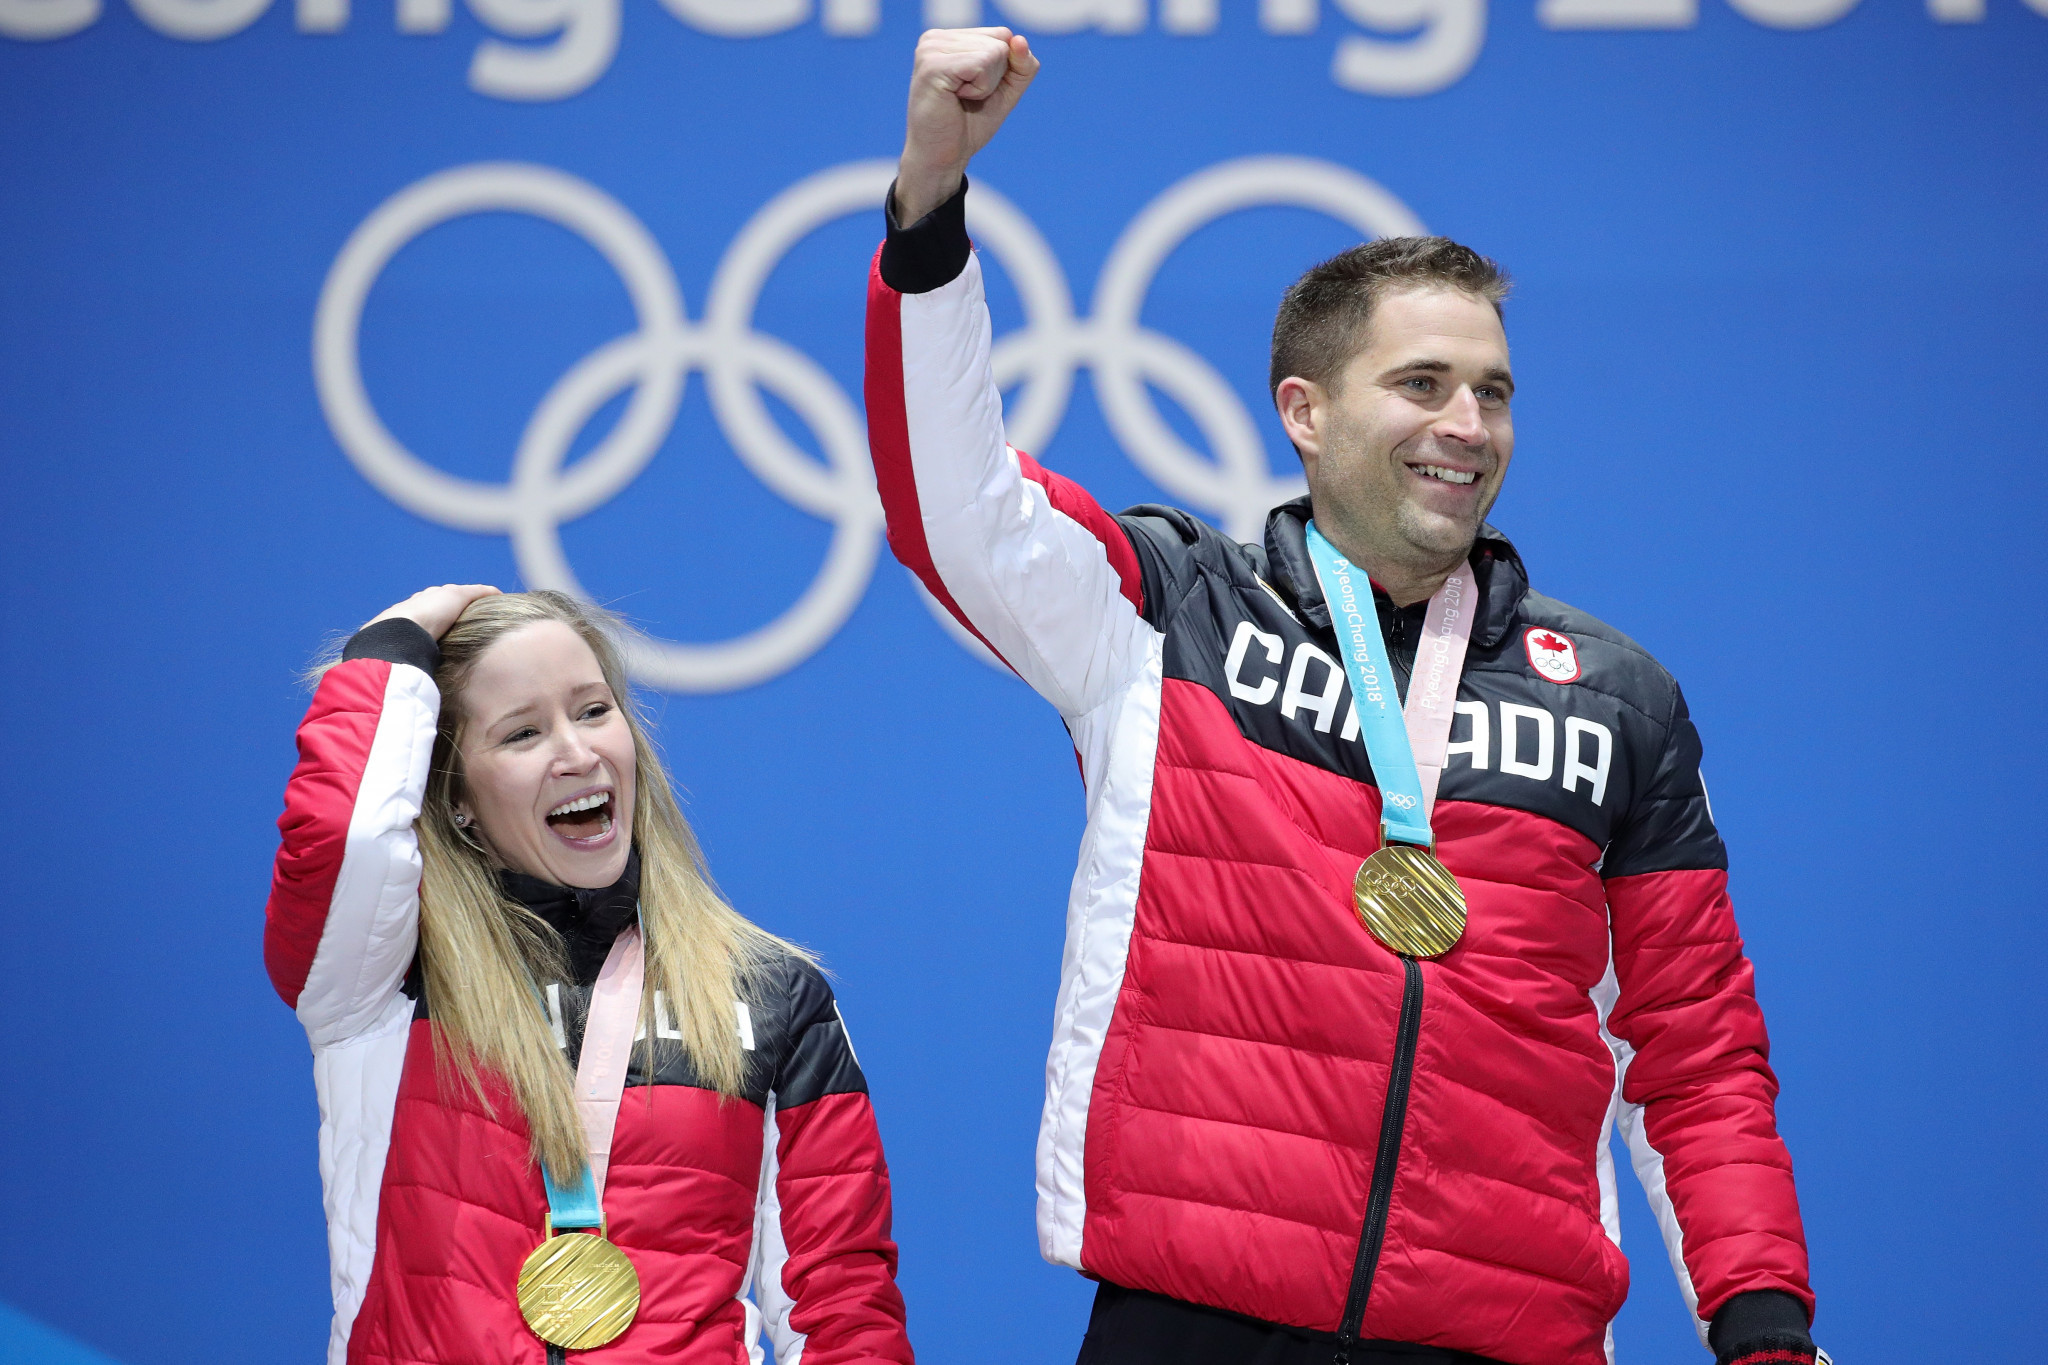 Curling Canada released its Beijing 2022 qualification criteria for teams and mixed doubles, having won the Olympic gold medal in the latter event at Pyeongchang 2018 ©Getty Images